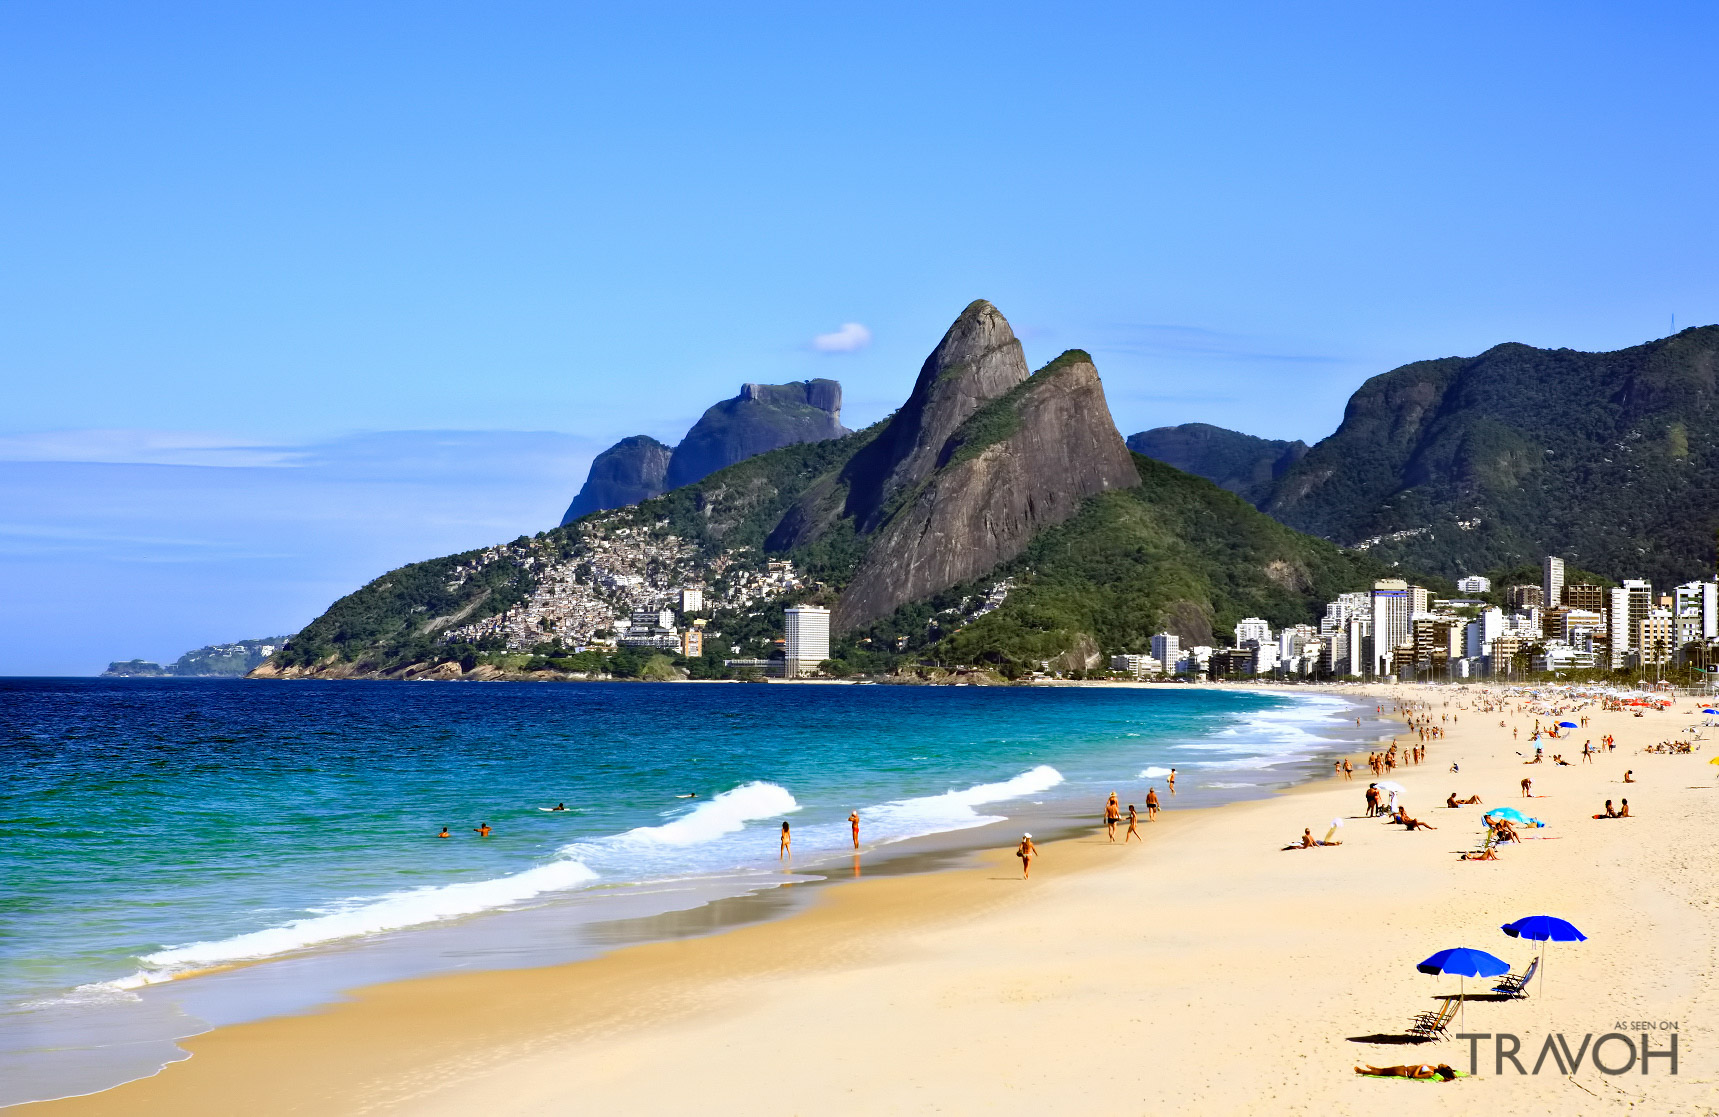 Leblon Beach - Exploring 10 of the Top Beaches in Rio de Janeiro, Brazil